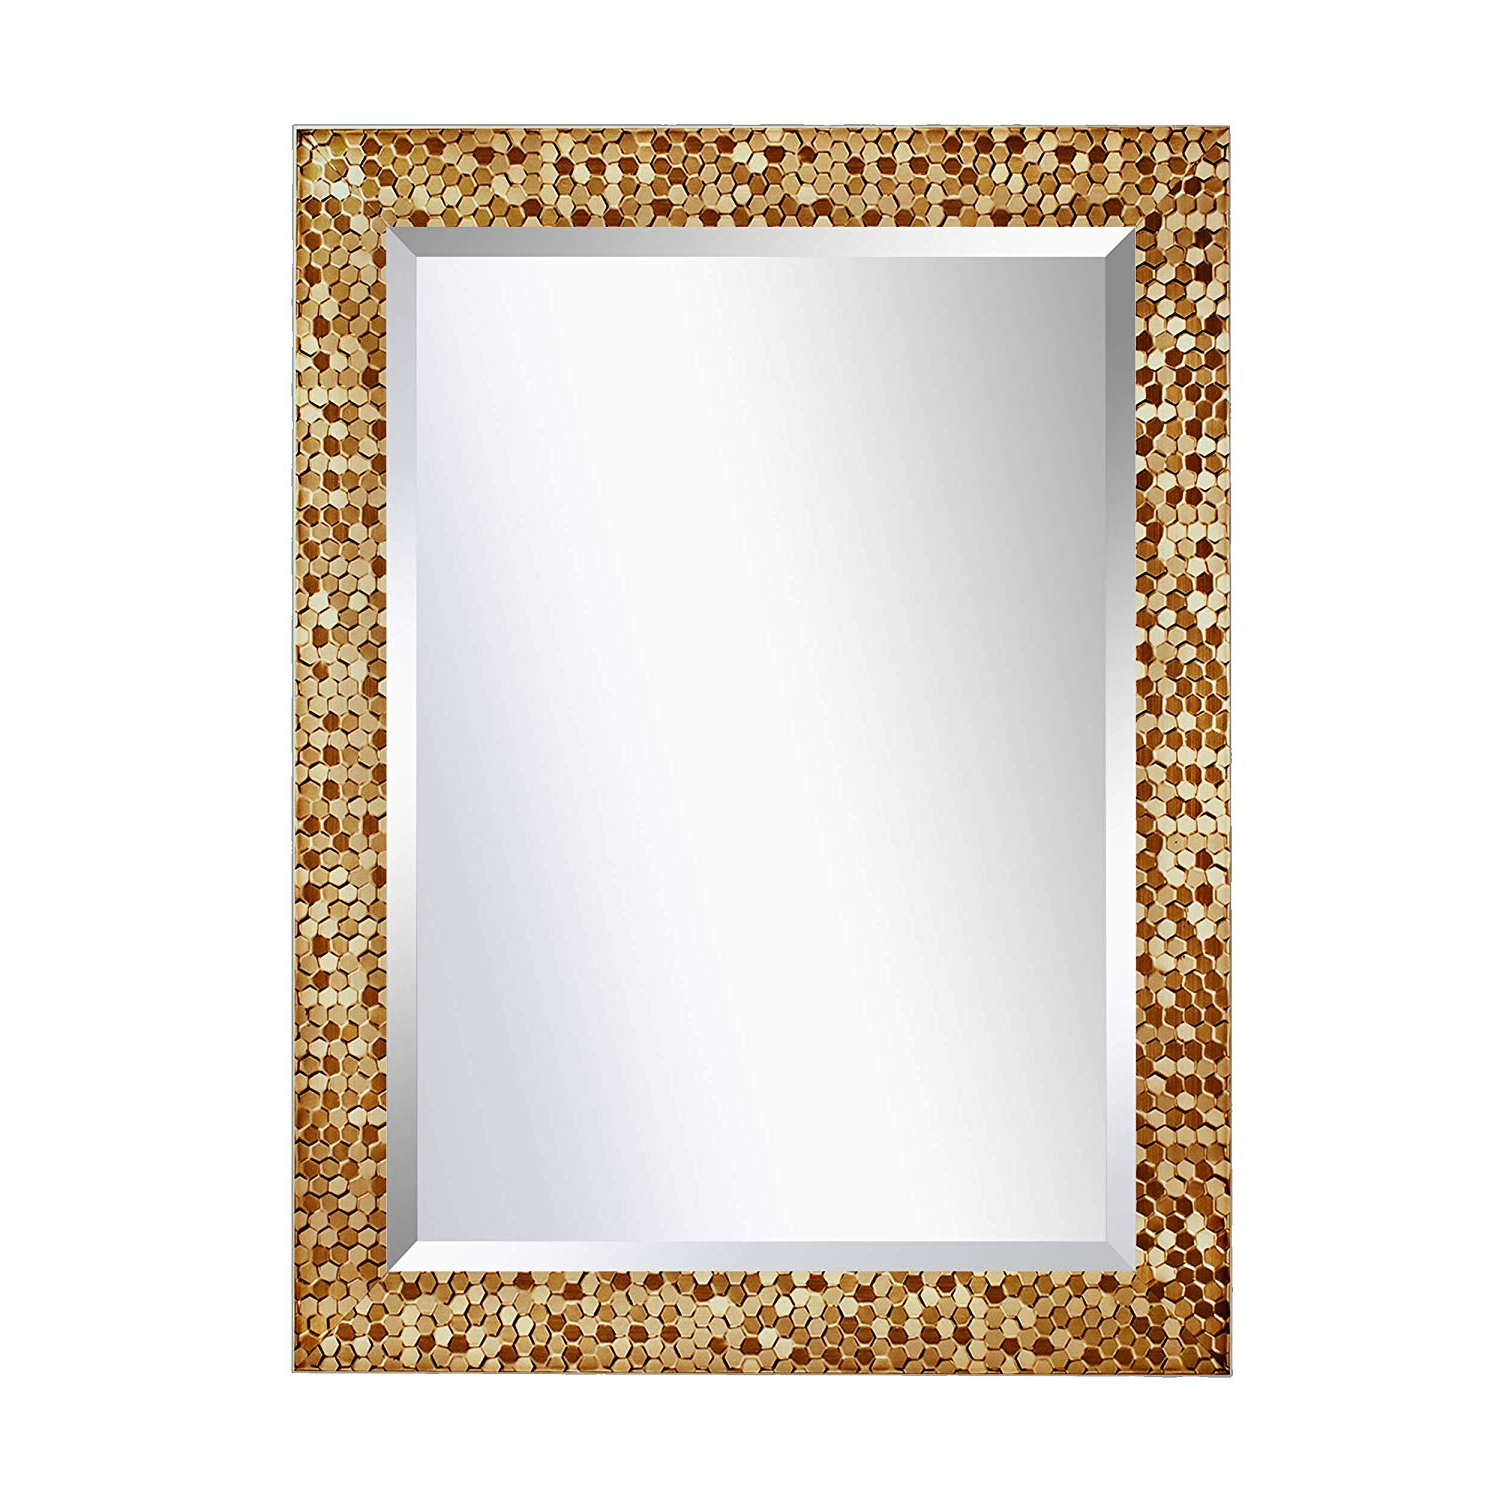 Mirror Trend Gold Mosaic Design Framed Decorative Wall Mirror Large  Rectangle Mirror For Living Room, Bedroom, Vanity, Dining Room, Bathroom  Hangs Regarding Well Known Large Decorative Wall Mirrors (View 12 of 20)